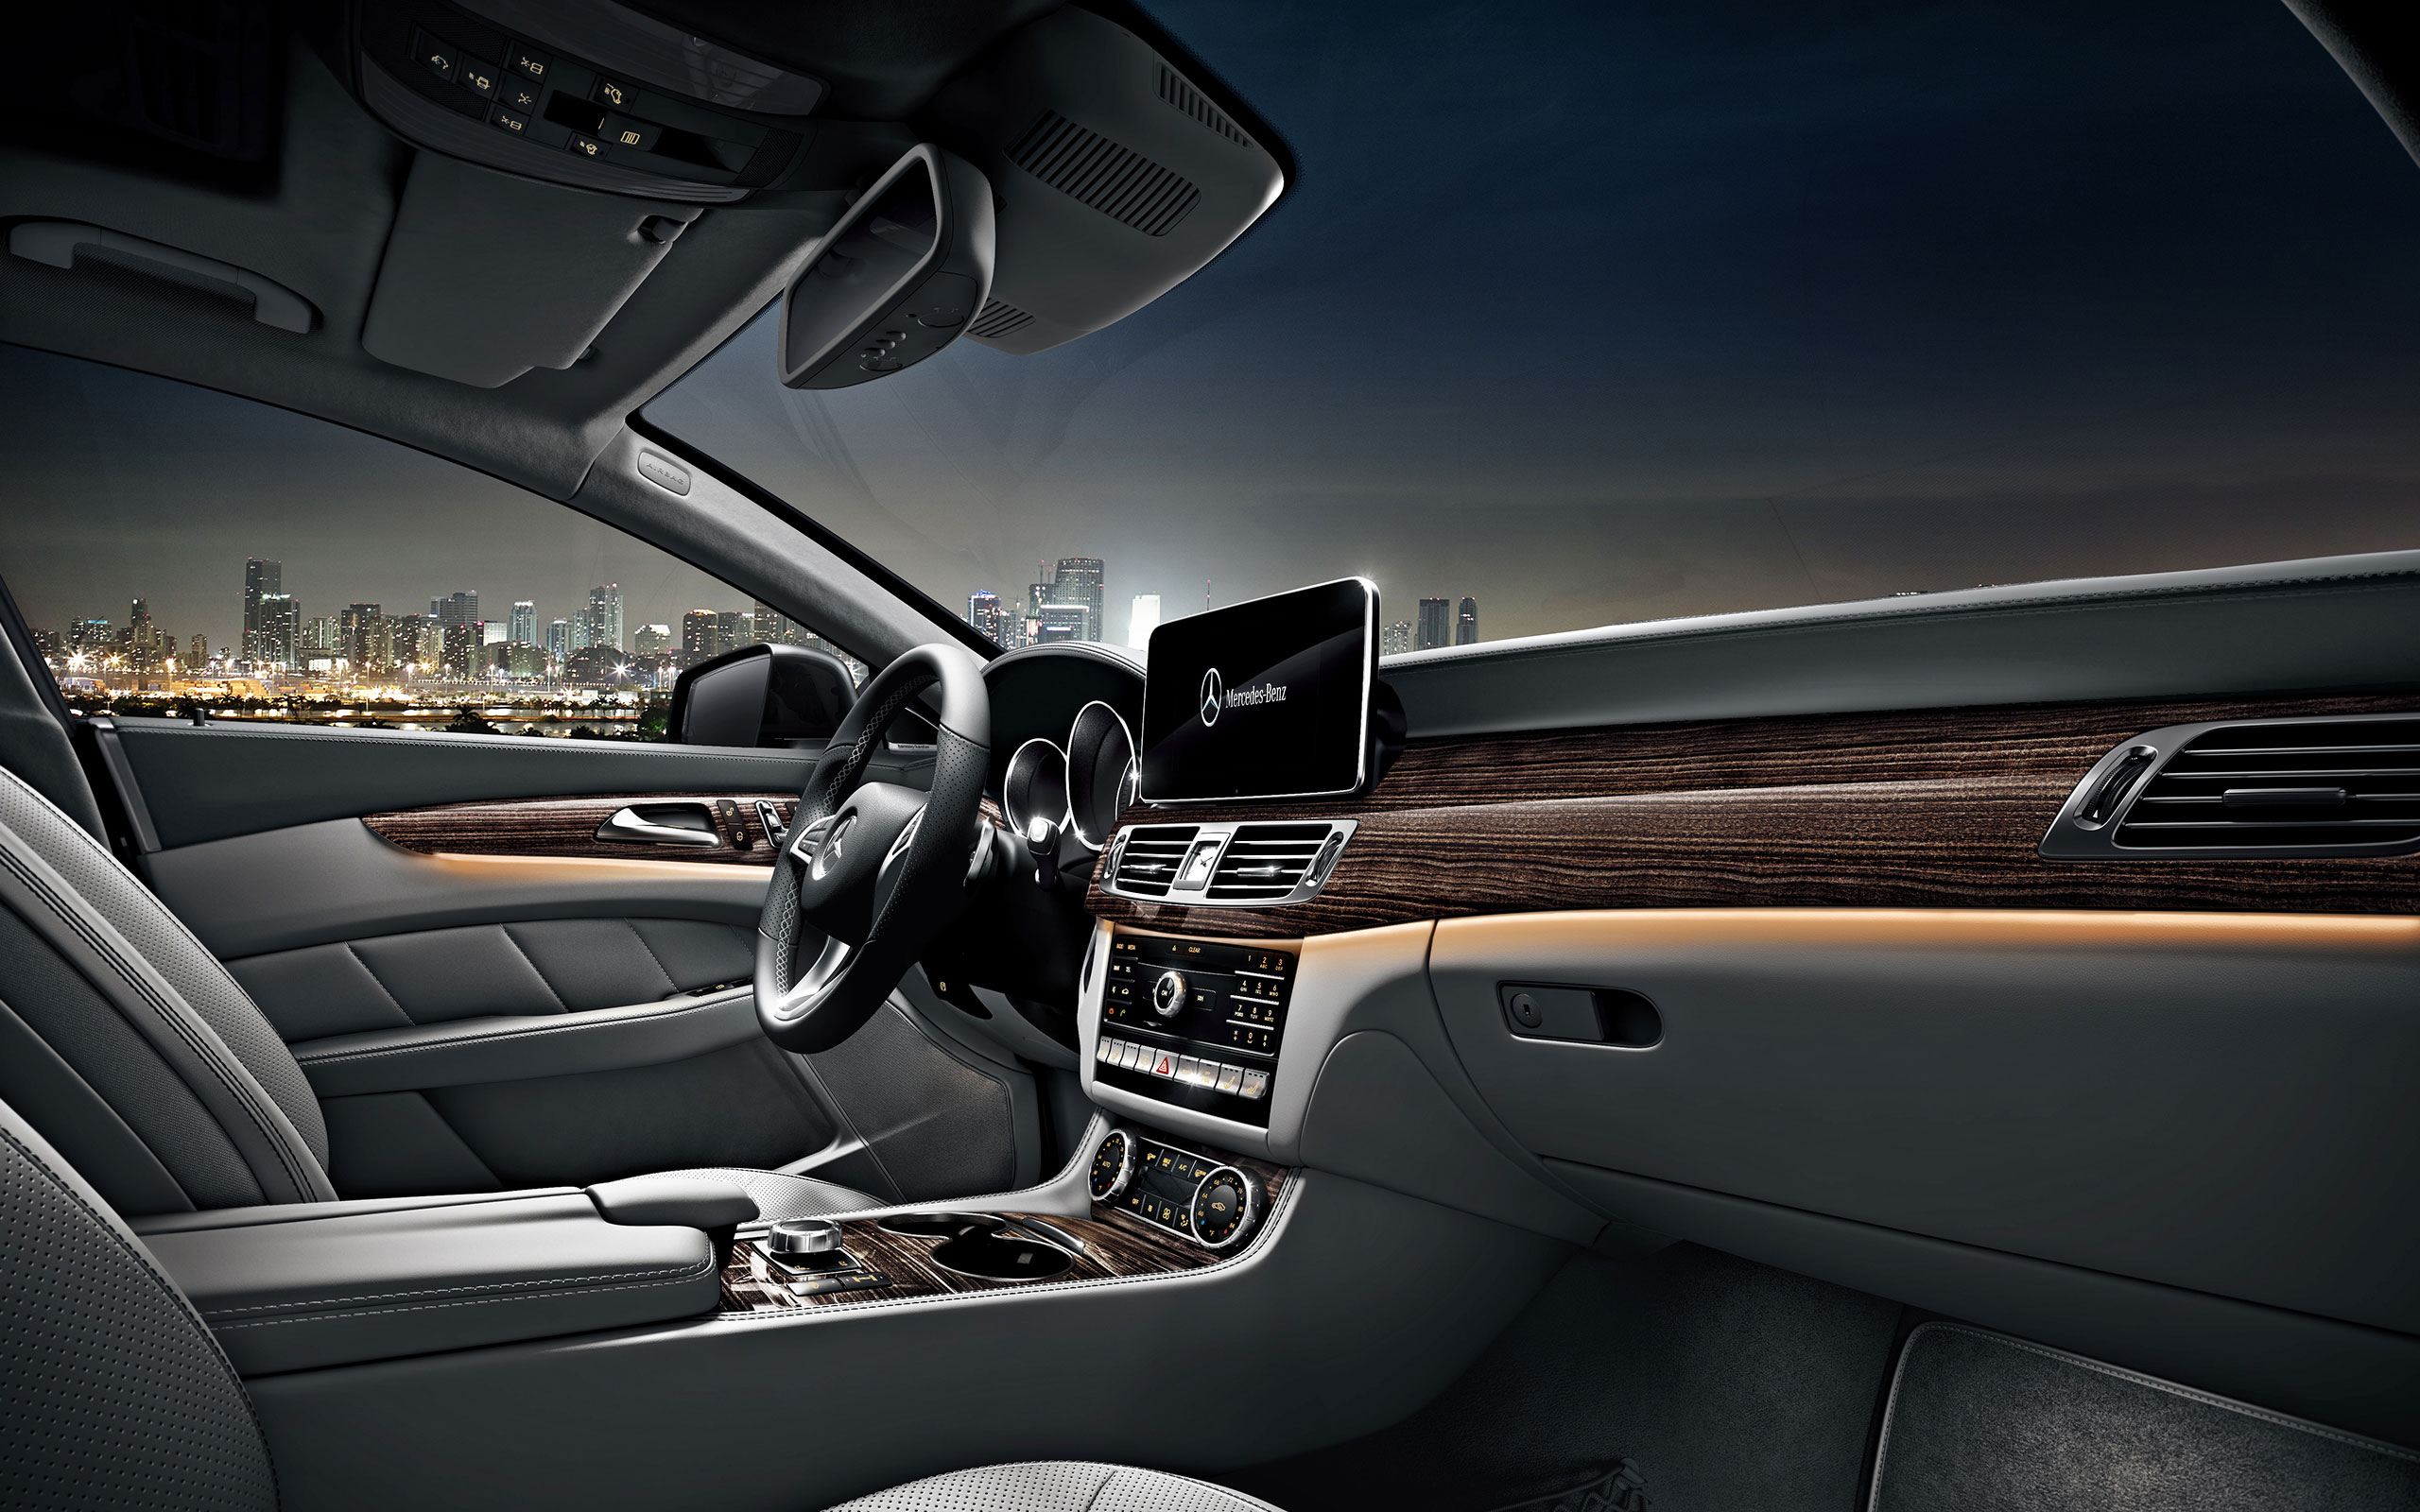 CLS550 With Crystal Grey/ Seashell Leather And Linden Wood Trim